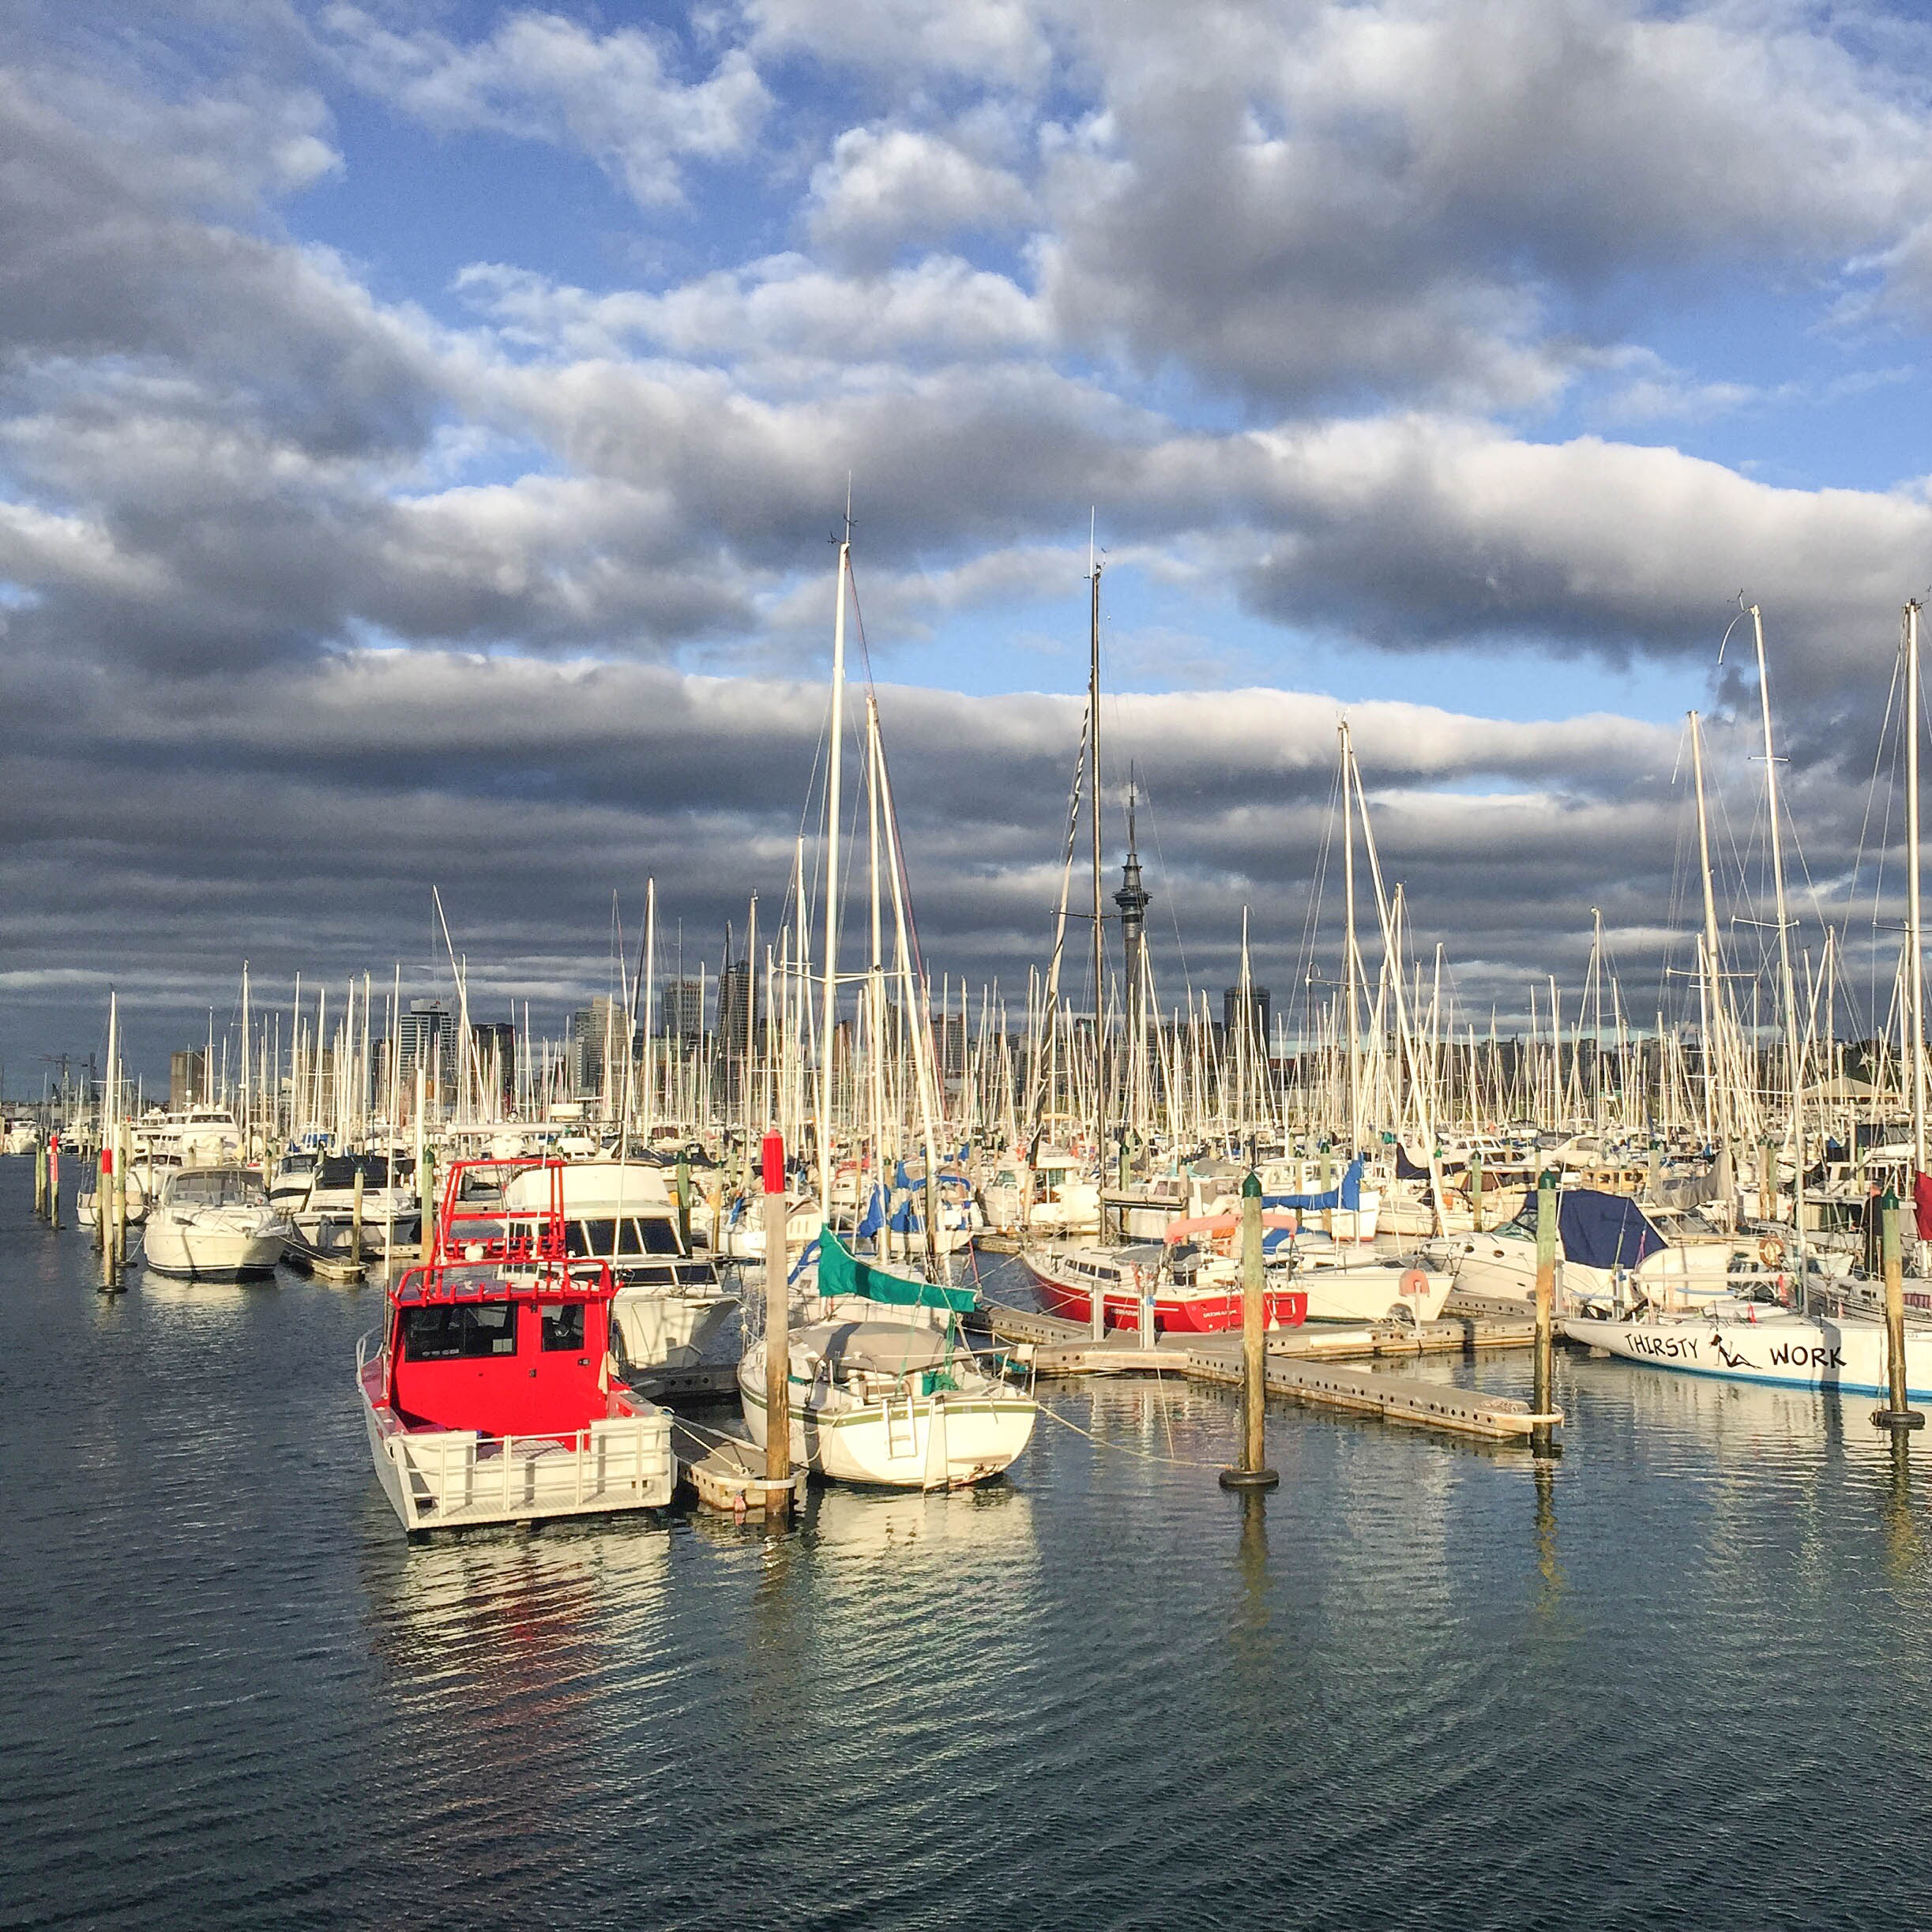 Boats in the Auckland Harbour